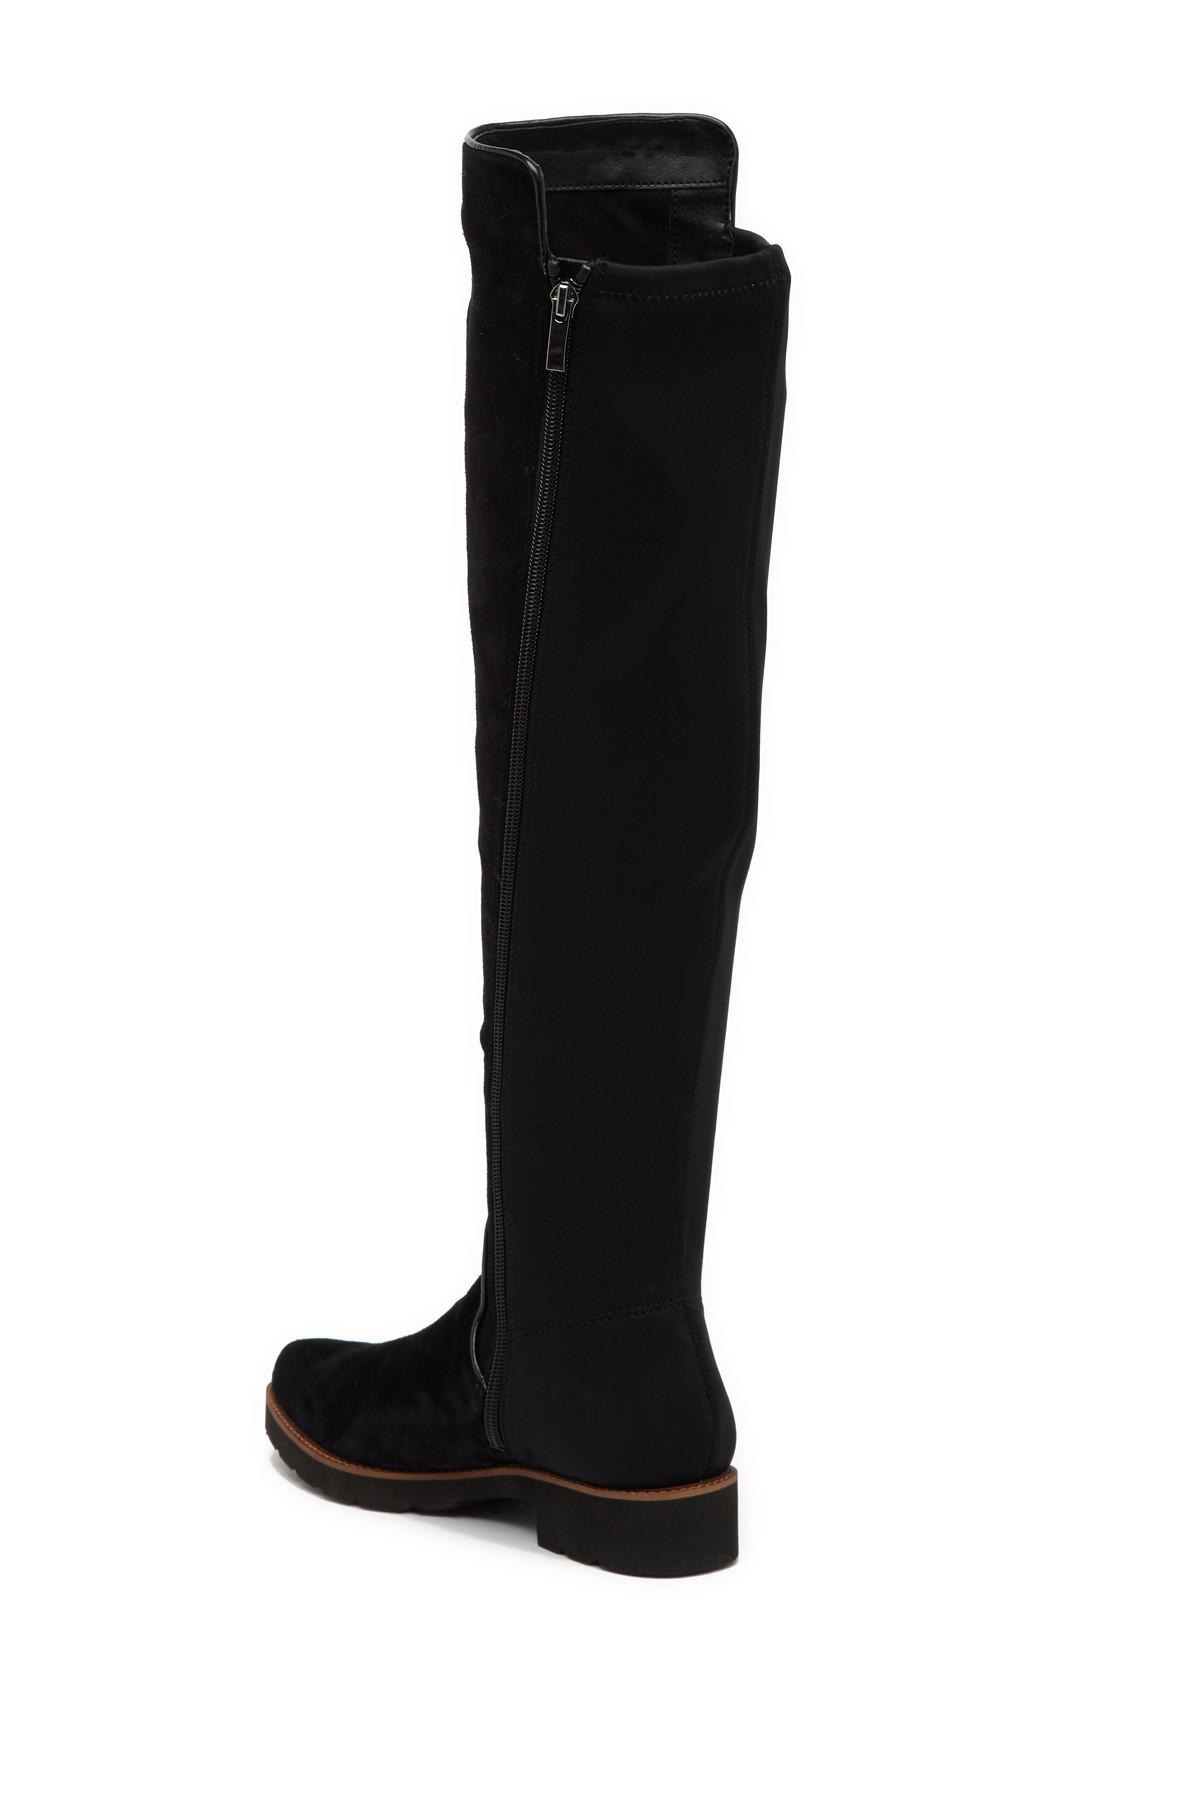 b0e452c65d1 Lyst - Franco Sarto Benner Suede Over-the-knee Boot in Black